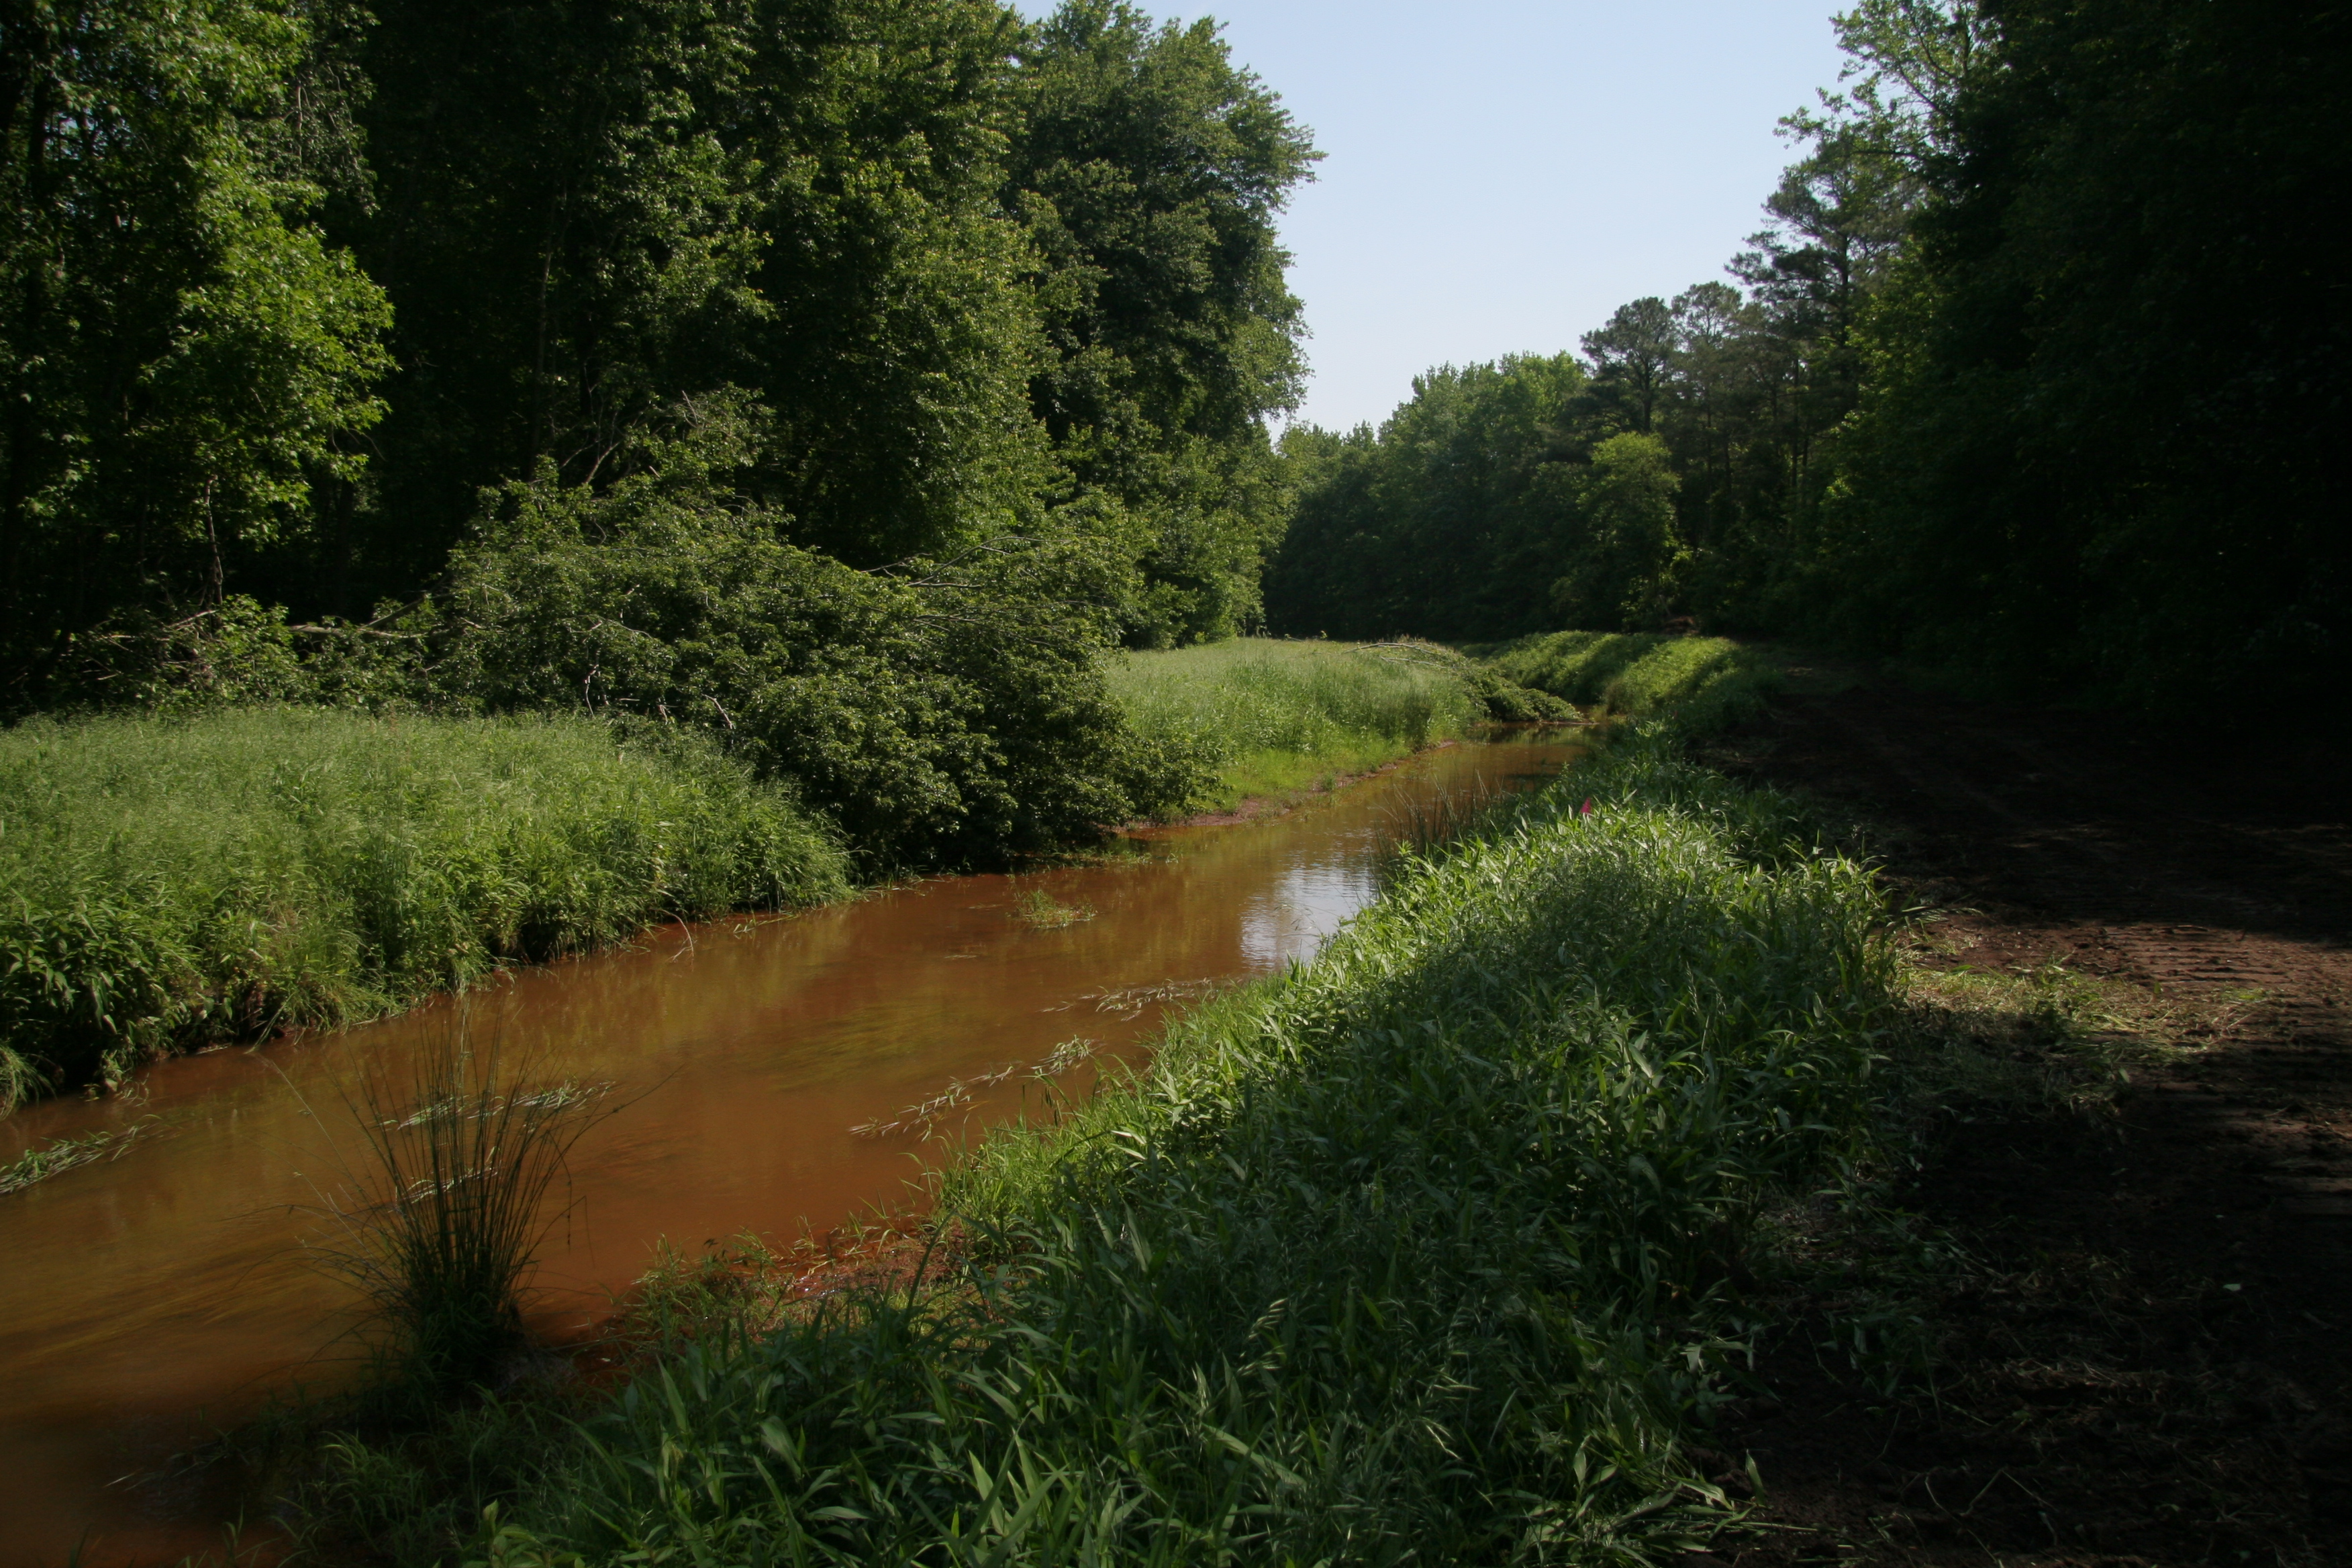 Redden State Forest Project Is Part Of Chesapeake Bay